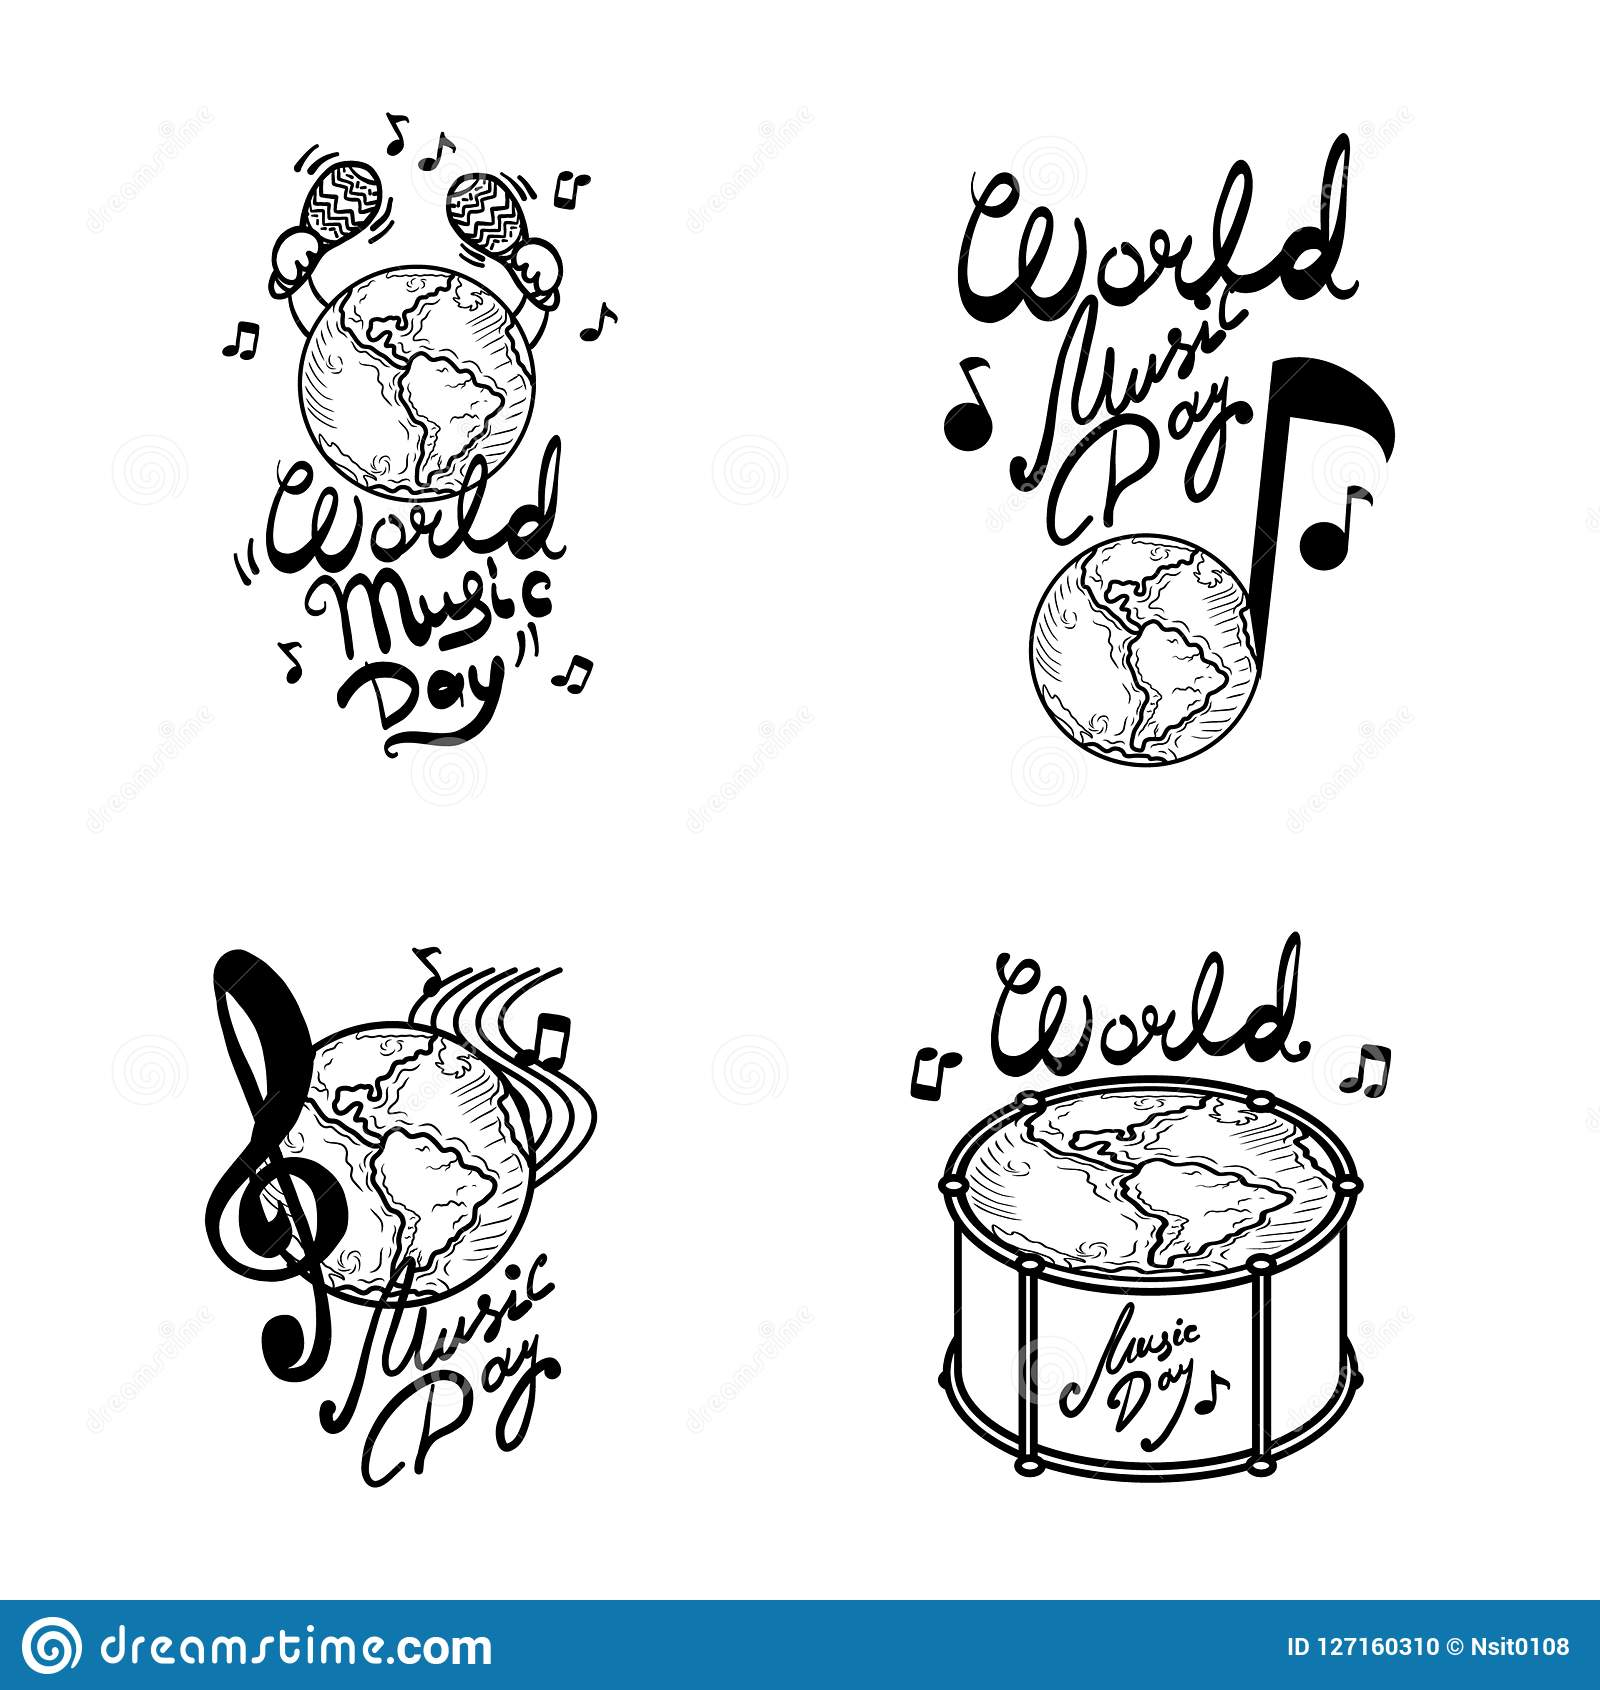 World music day banner set, hand drawn style